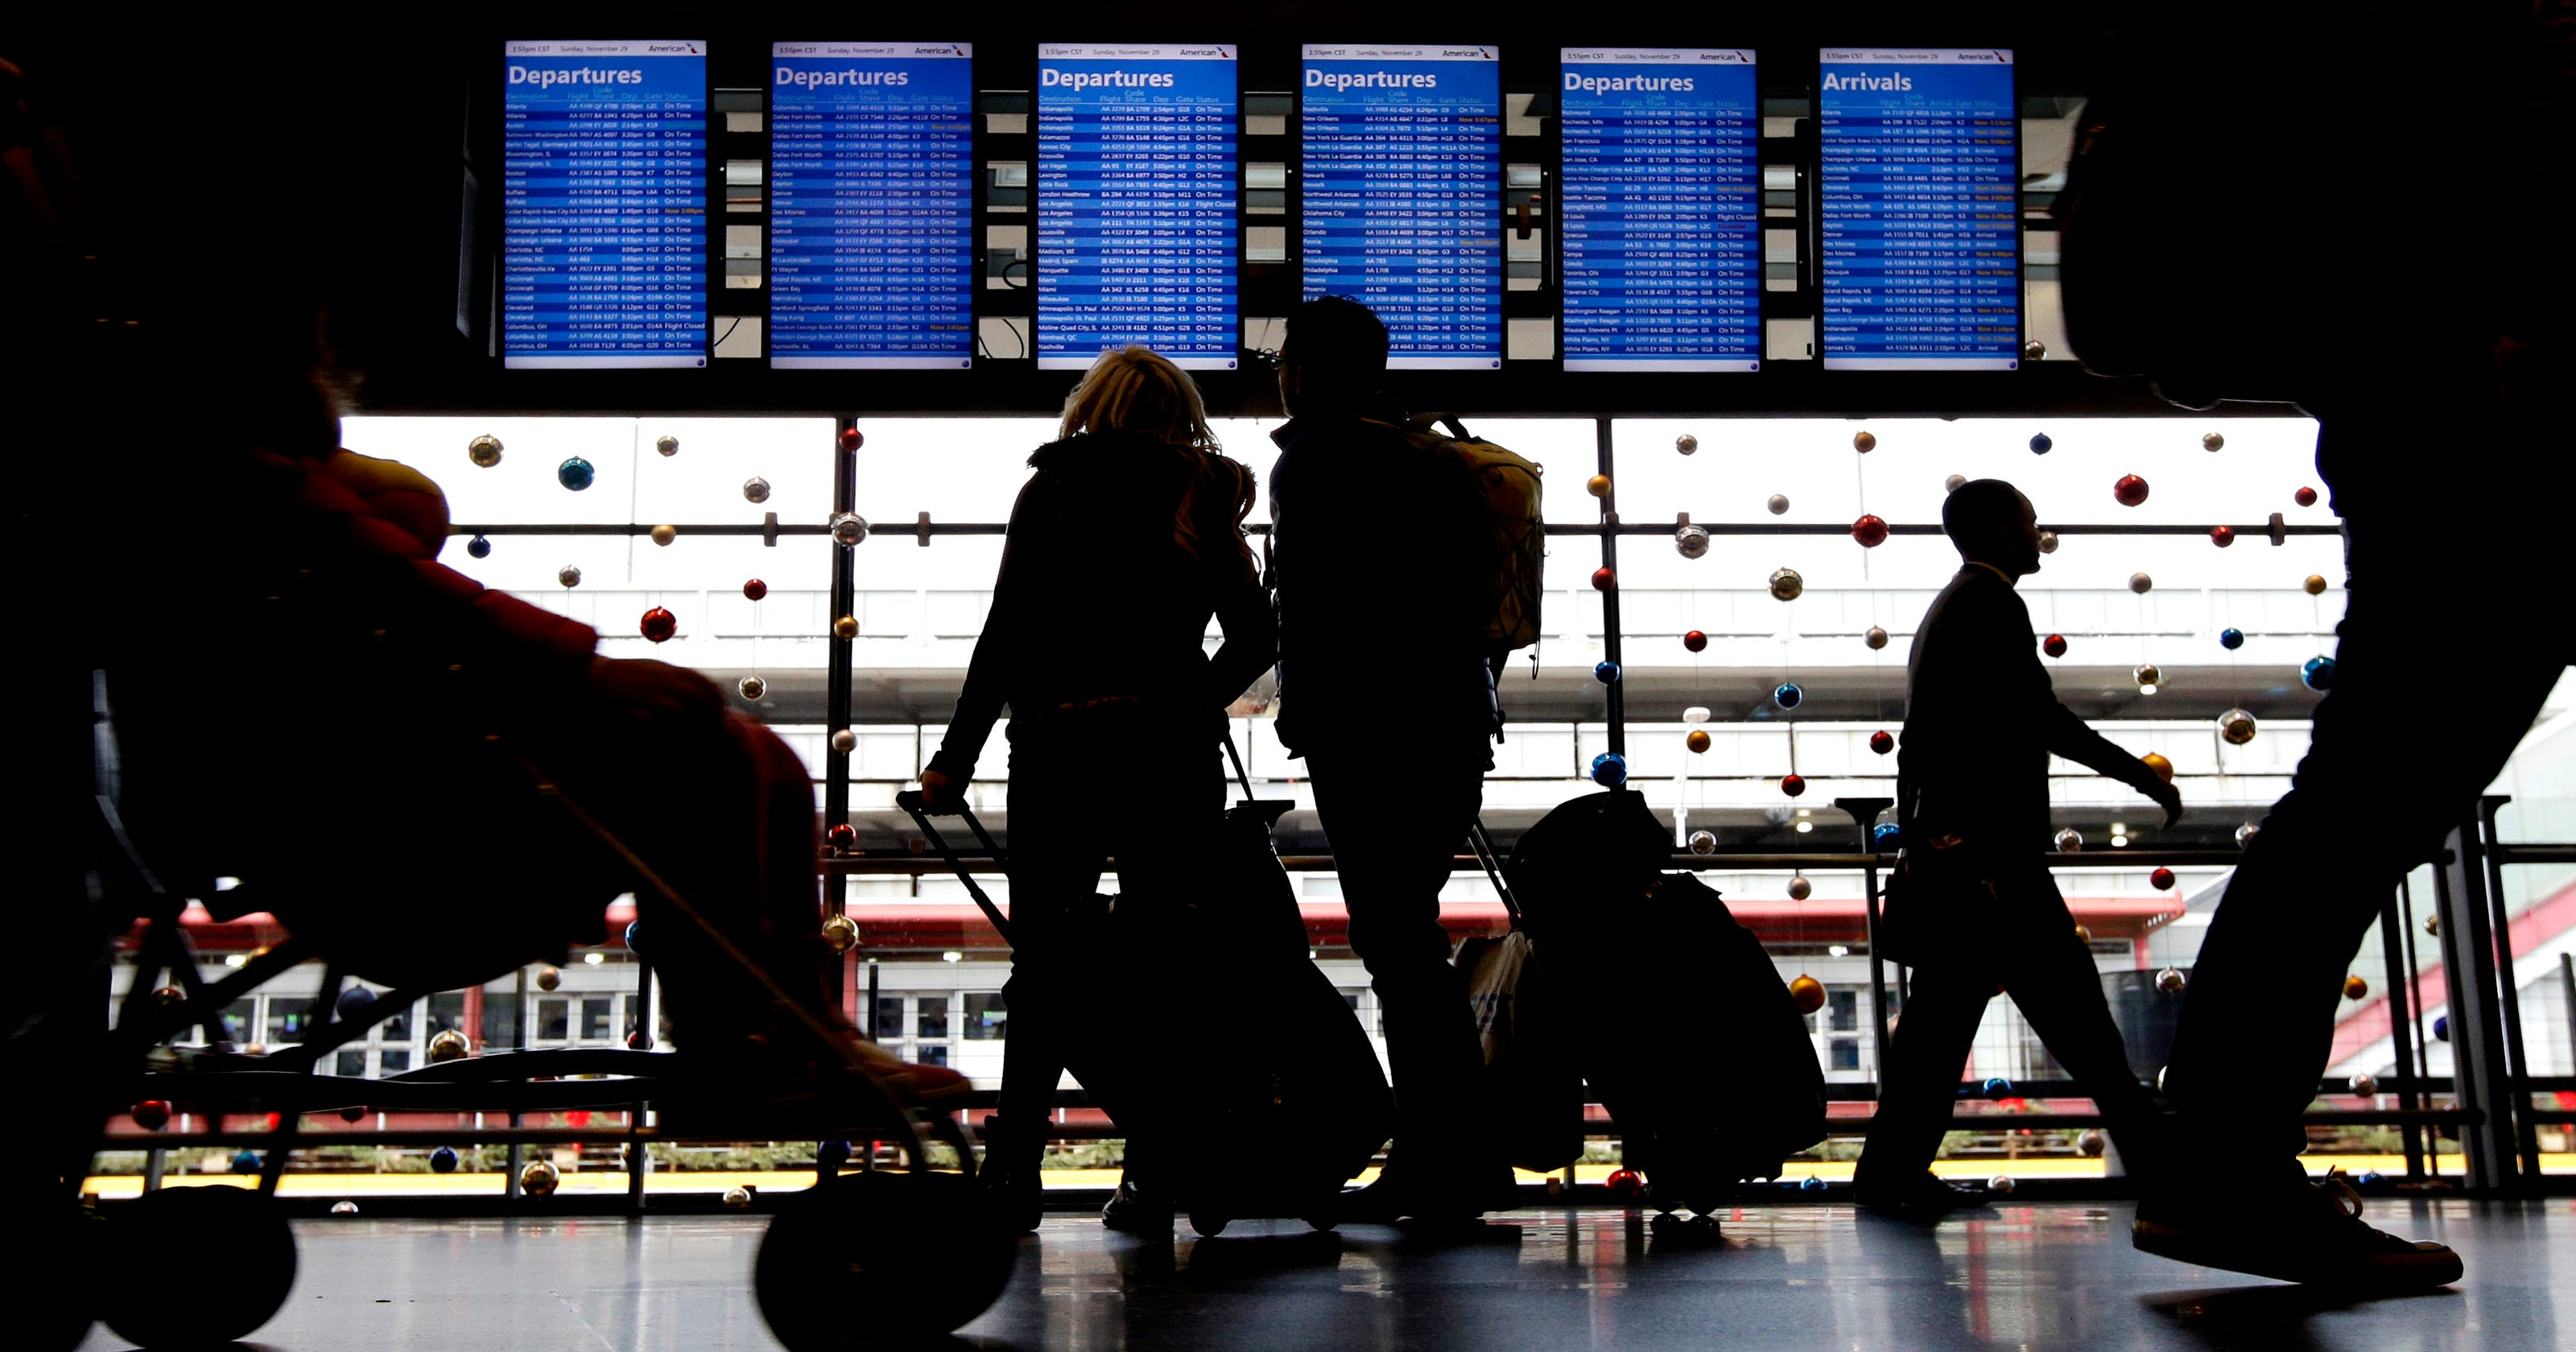 holiday travel the best and worst days to fly - Best Time To Buy Airline Tickets For Christmas